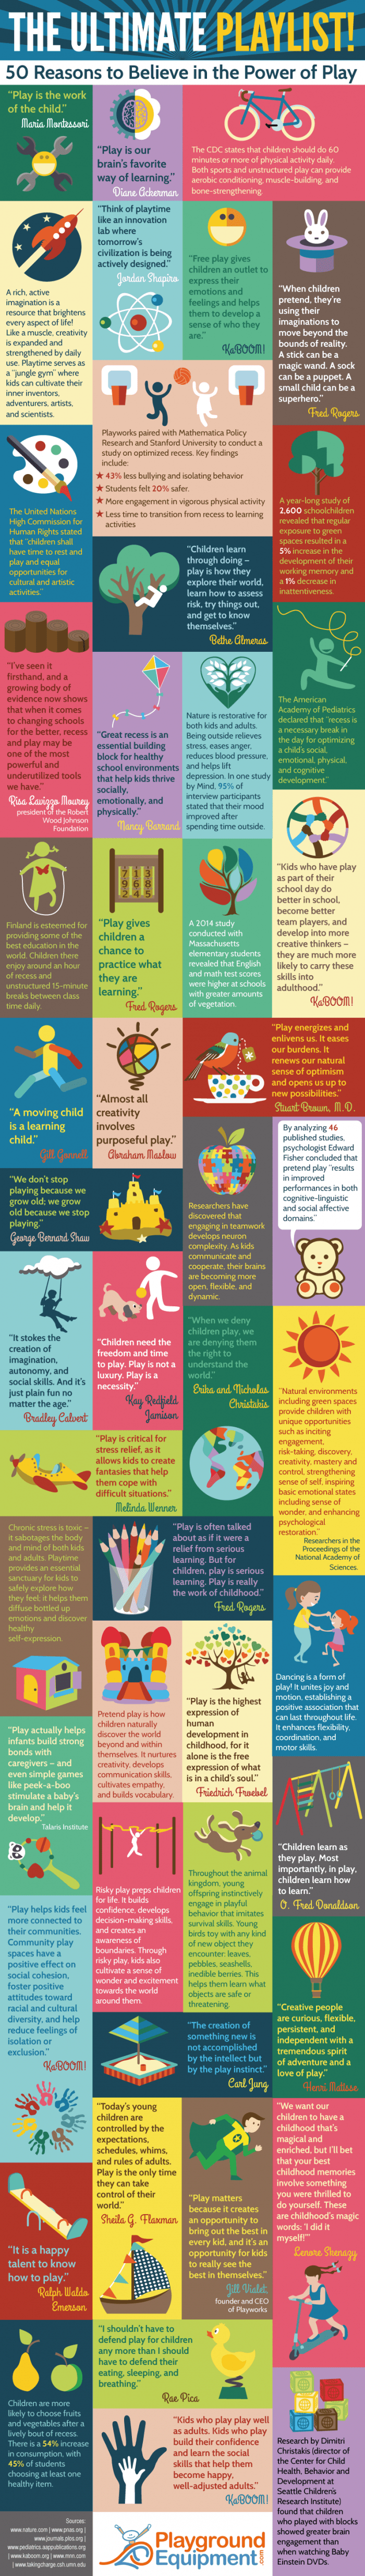 infographic of different quotes about the benefits of play for children